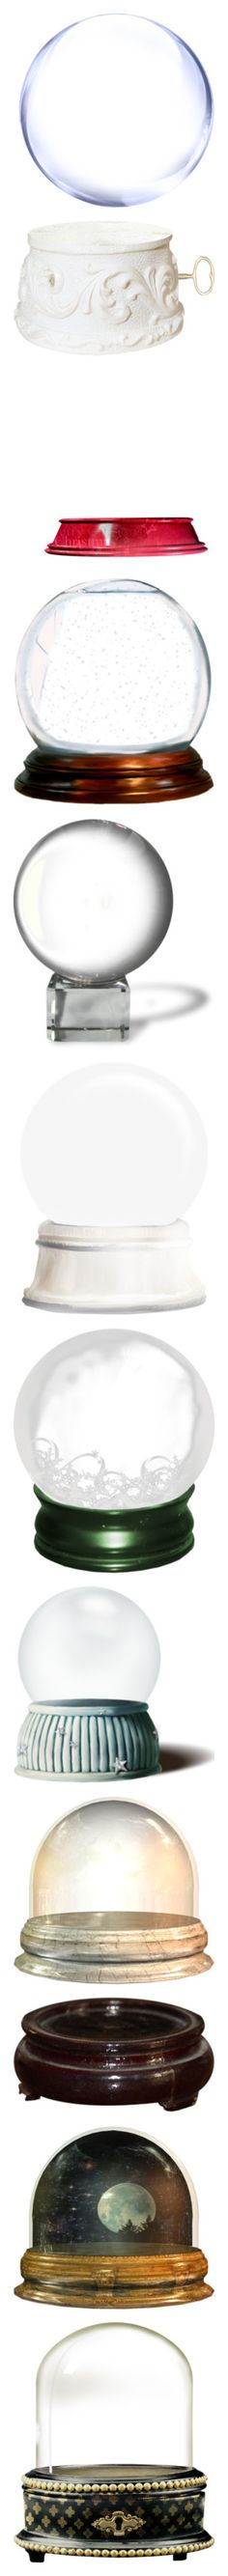 """""""Snow Globes ❄️"""" by mellie2cute ❤ liked on Polyvore featuring effects, circles, backgrounds, bubbles, fillers, round, borders, embellishments, text and texture"""